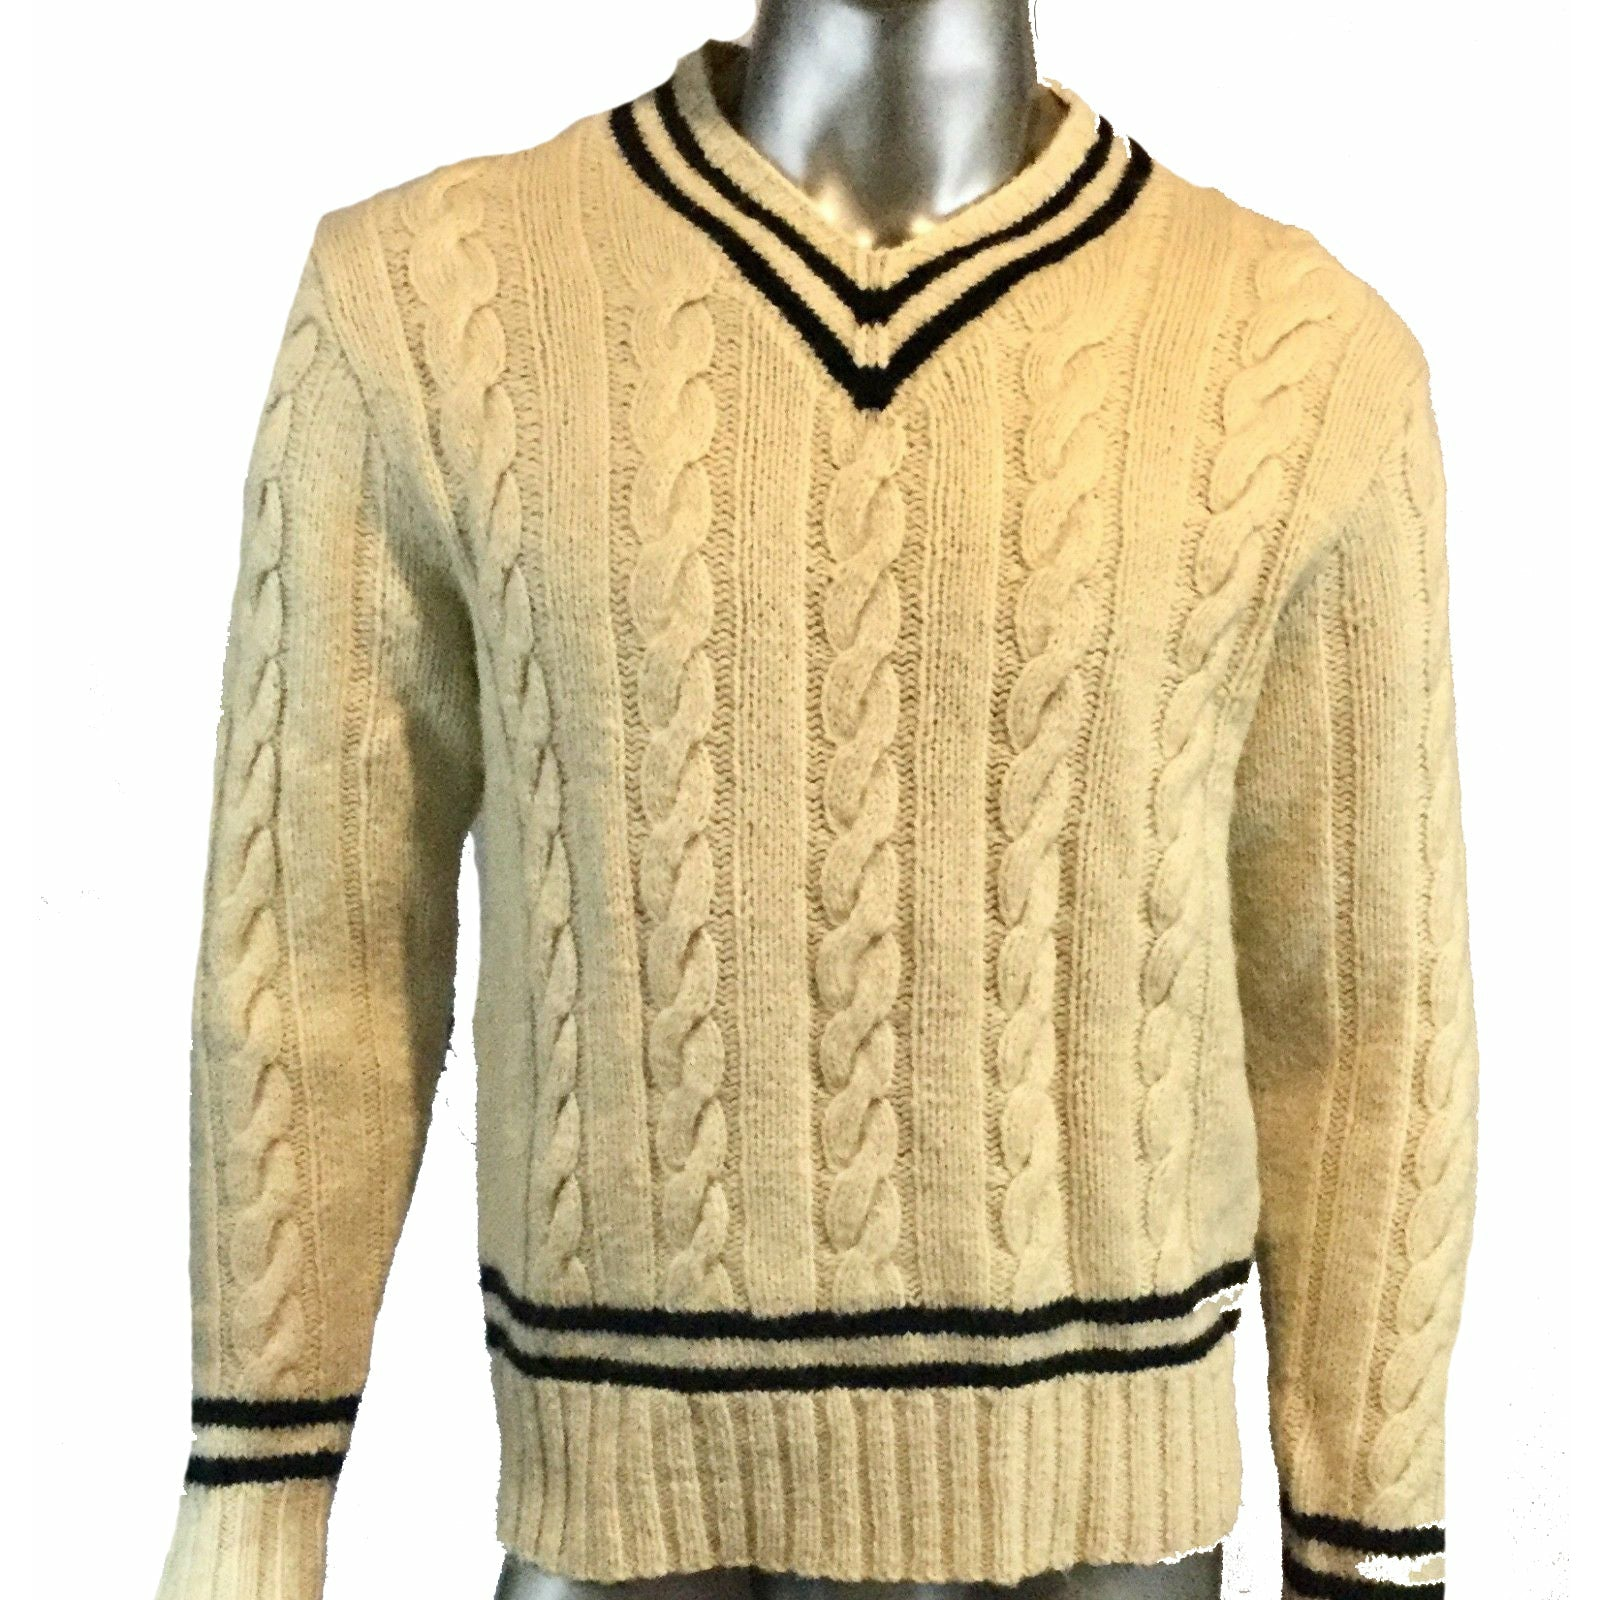 Polo Ralph Lauren Hand Knit Cabel Sweater XL Elbow Patches Wool V-Neck Vintage